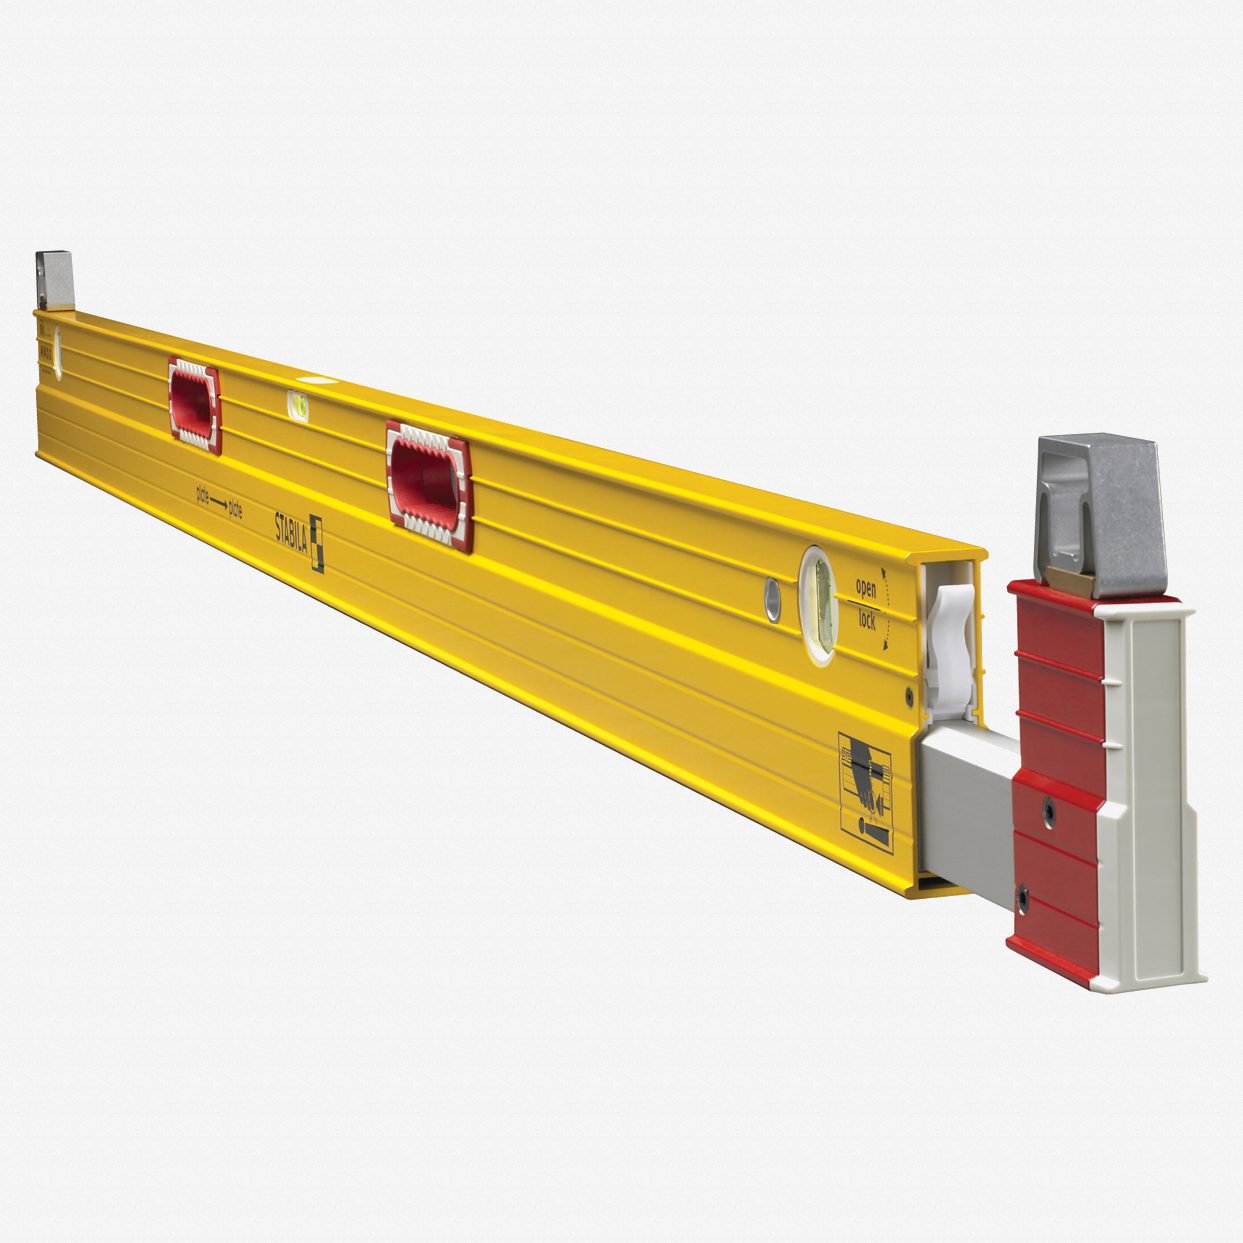 Stabila 35610 Type 106T Extendable Plate Level, 6' - 10' with Removable Stand-Offs - KC Tool